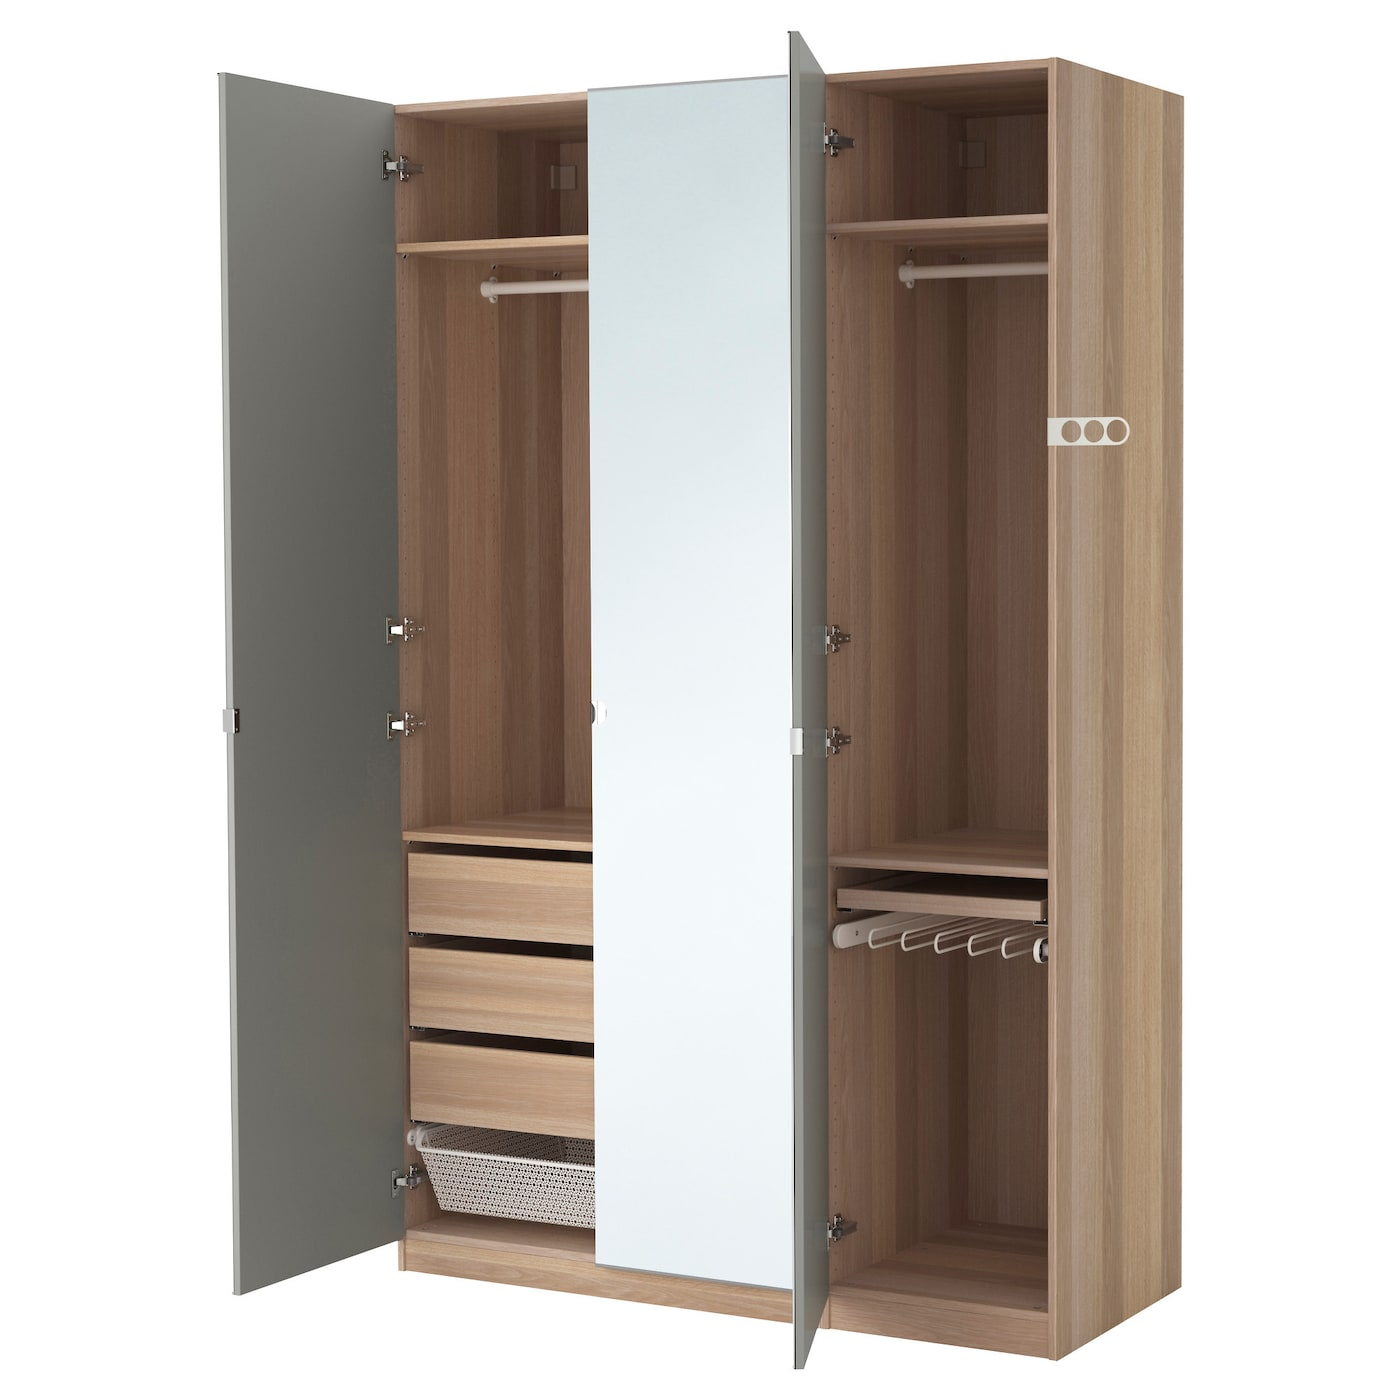 Pax wardrobe white stained oak effect vikedal mirror glass - Armoire porte coulissante miroir ikea ...